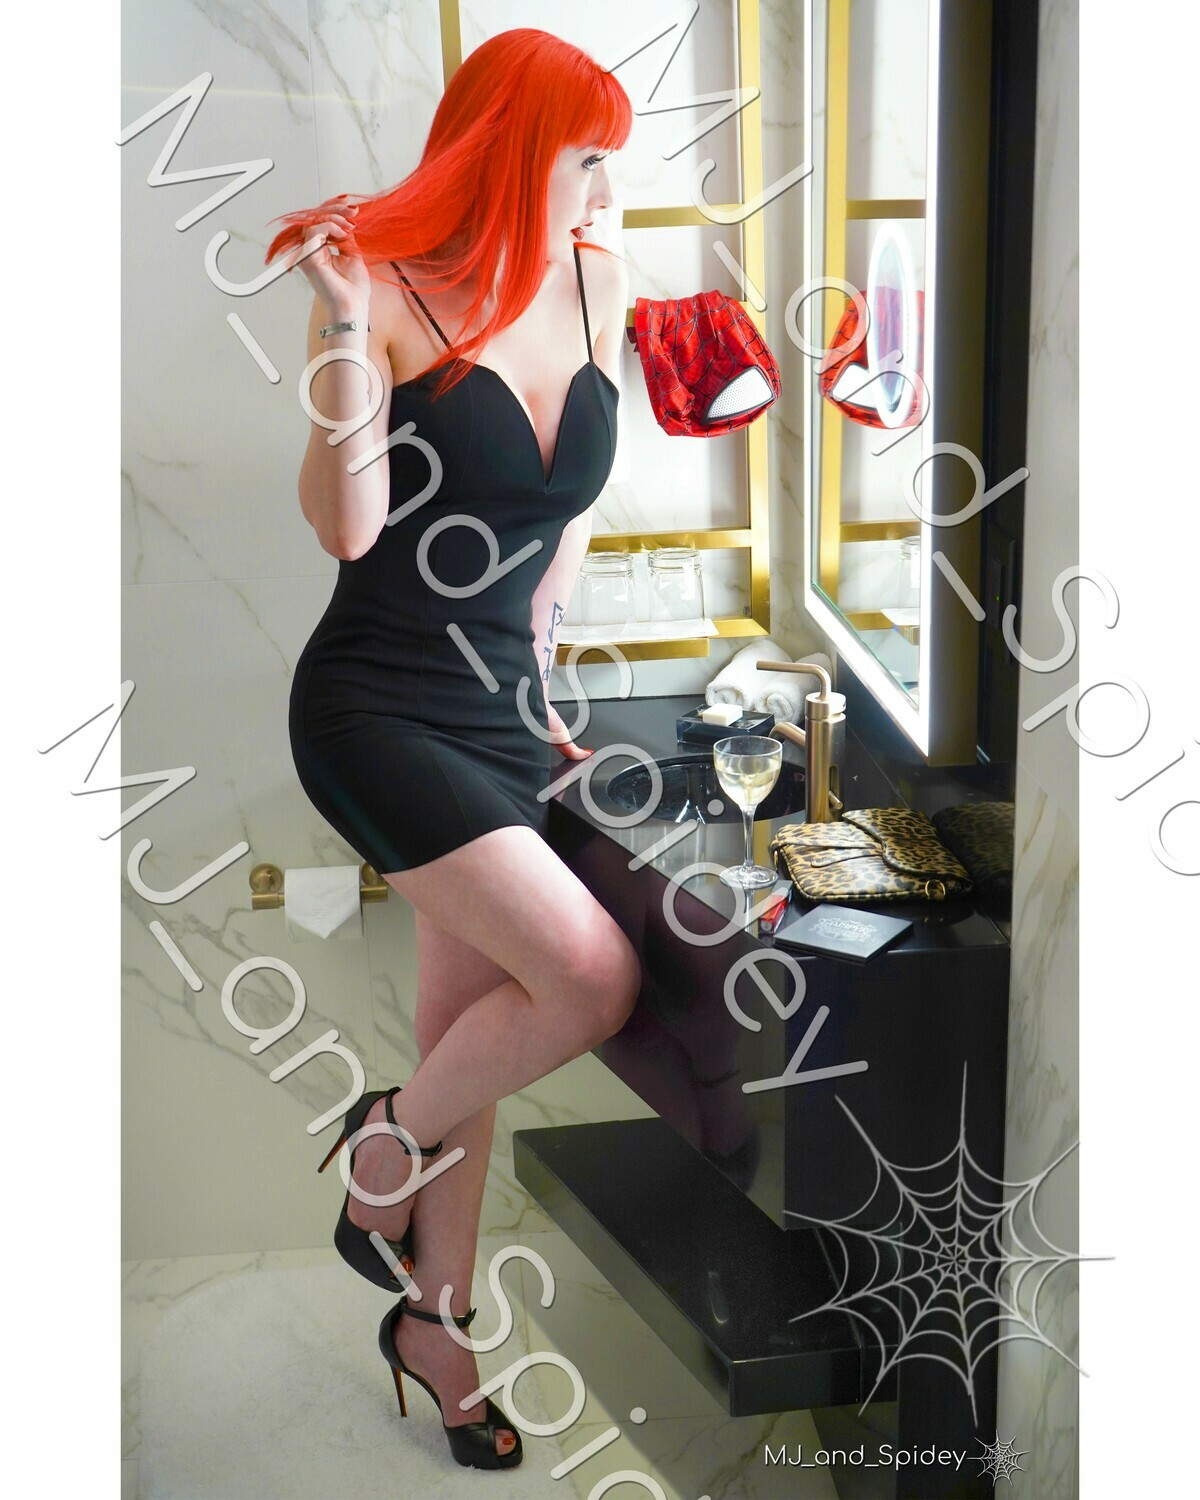 Marvel - Spider-Man - Mary Jane Watson - Glamor No. 3 - 8x10 Cosplay Print (@MJ_and_Spidey, MJ and Spidey, Comics)